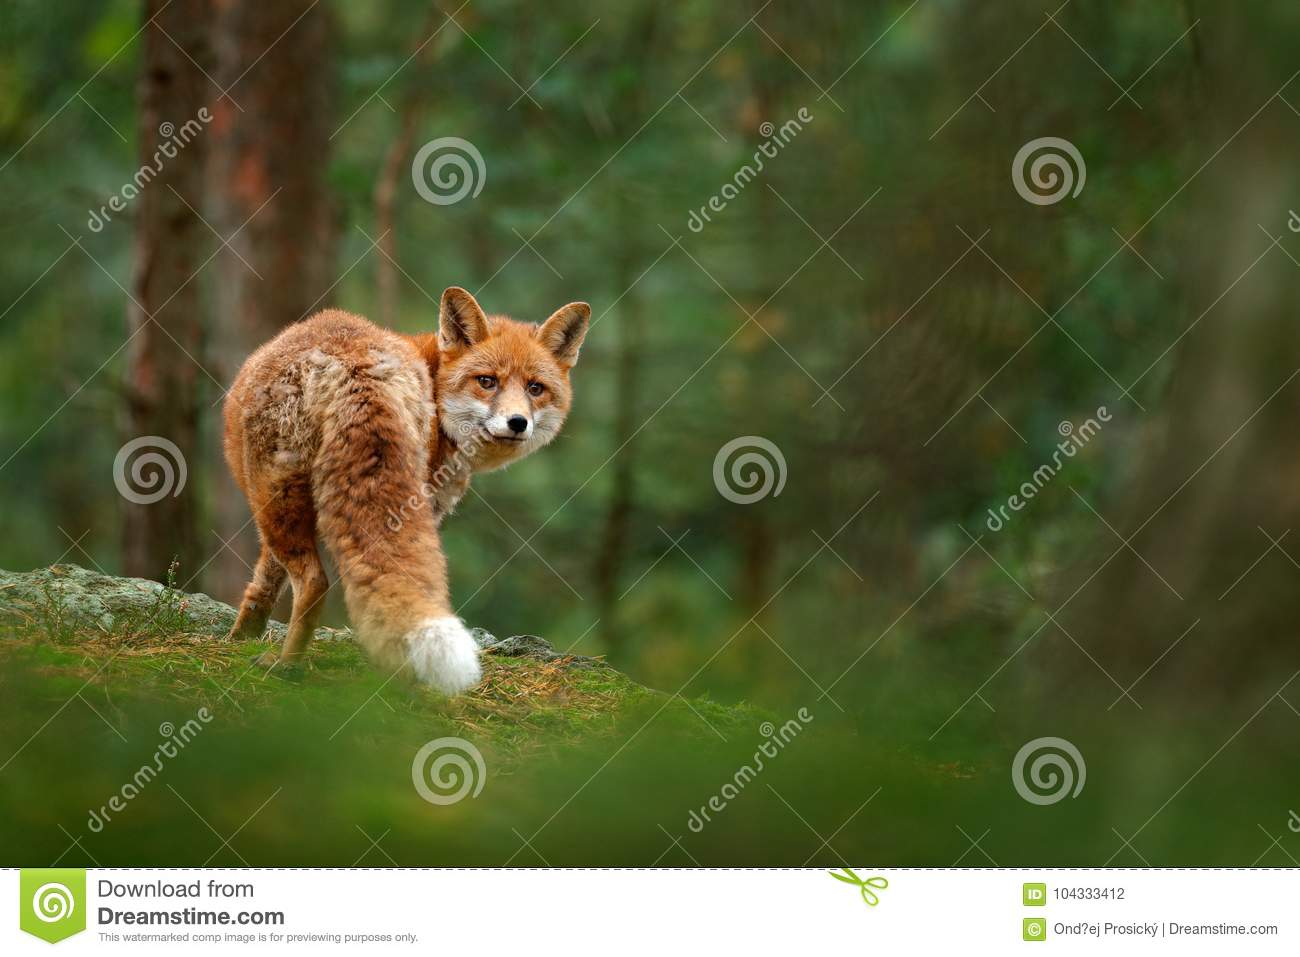 Fox in green forest. Cute Red Fox, Vulpes vulpes, at forest with flowers, moss stone. Wildlife scene from nature. Animal in nature